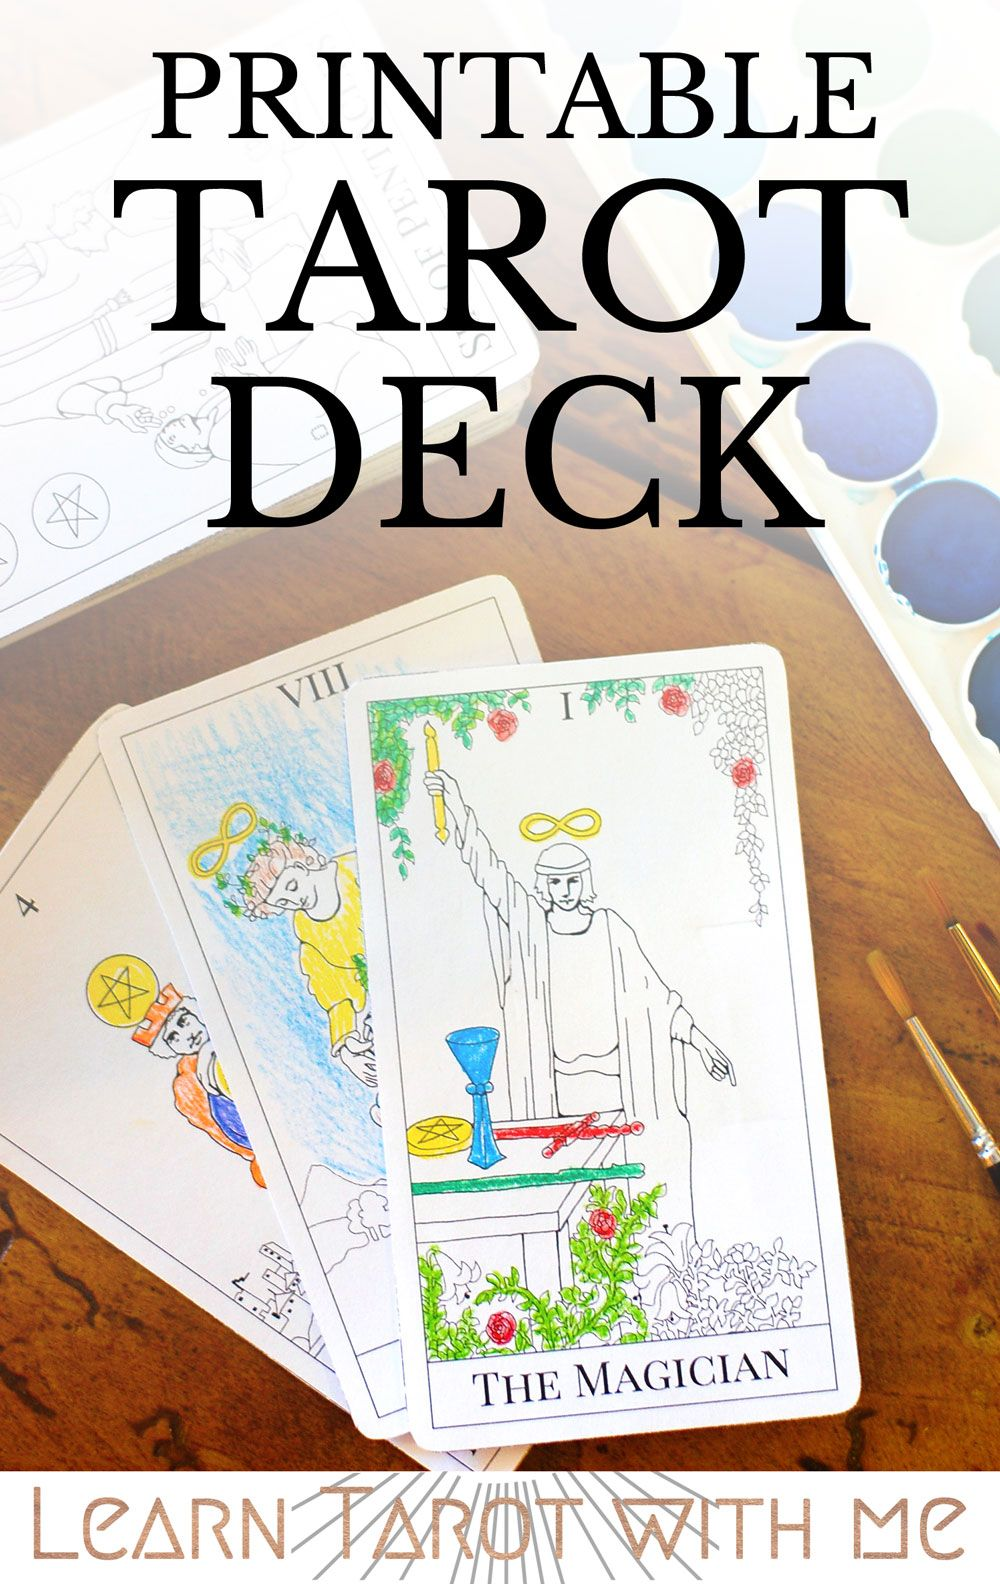 Clever image with printable tarot cards with meanings